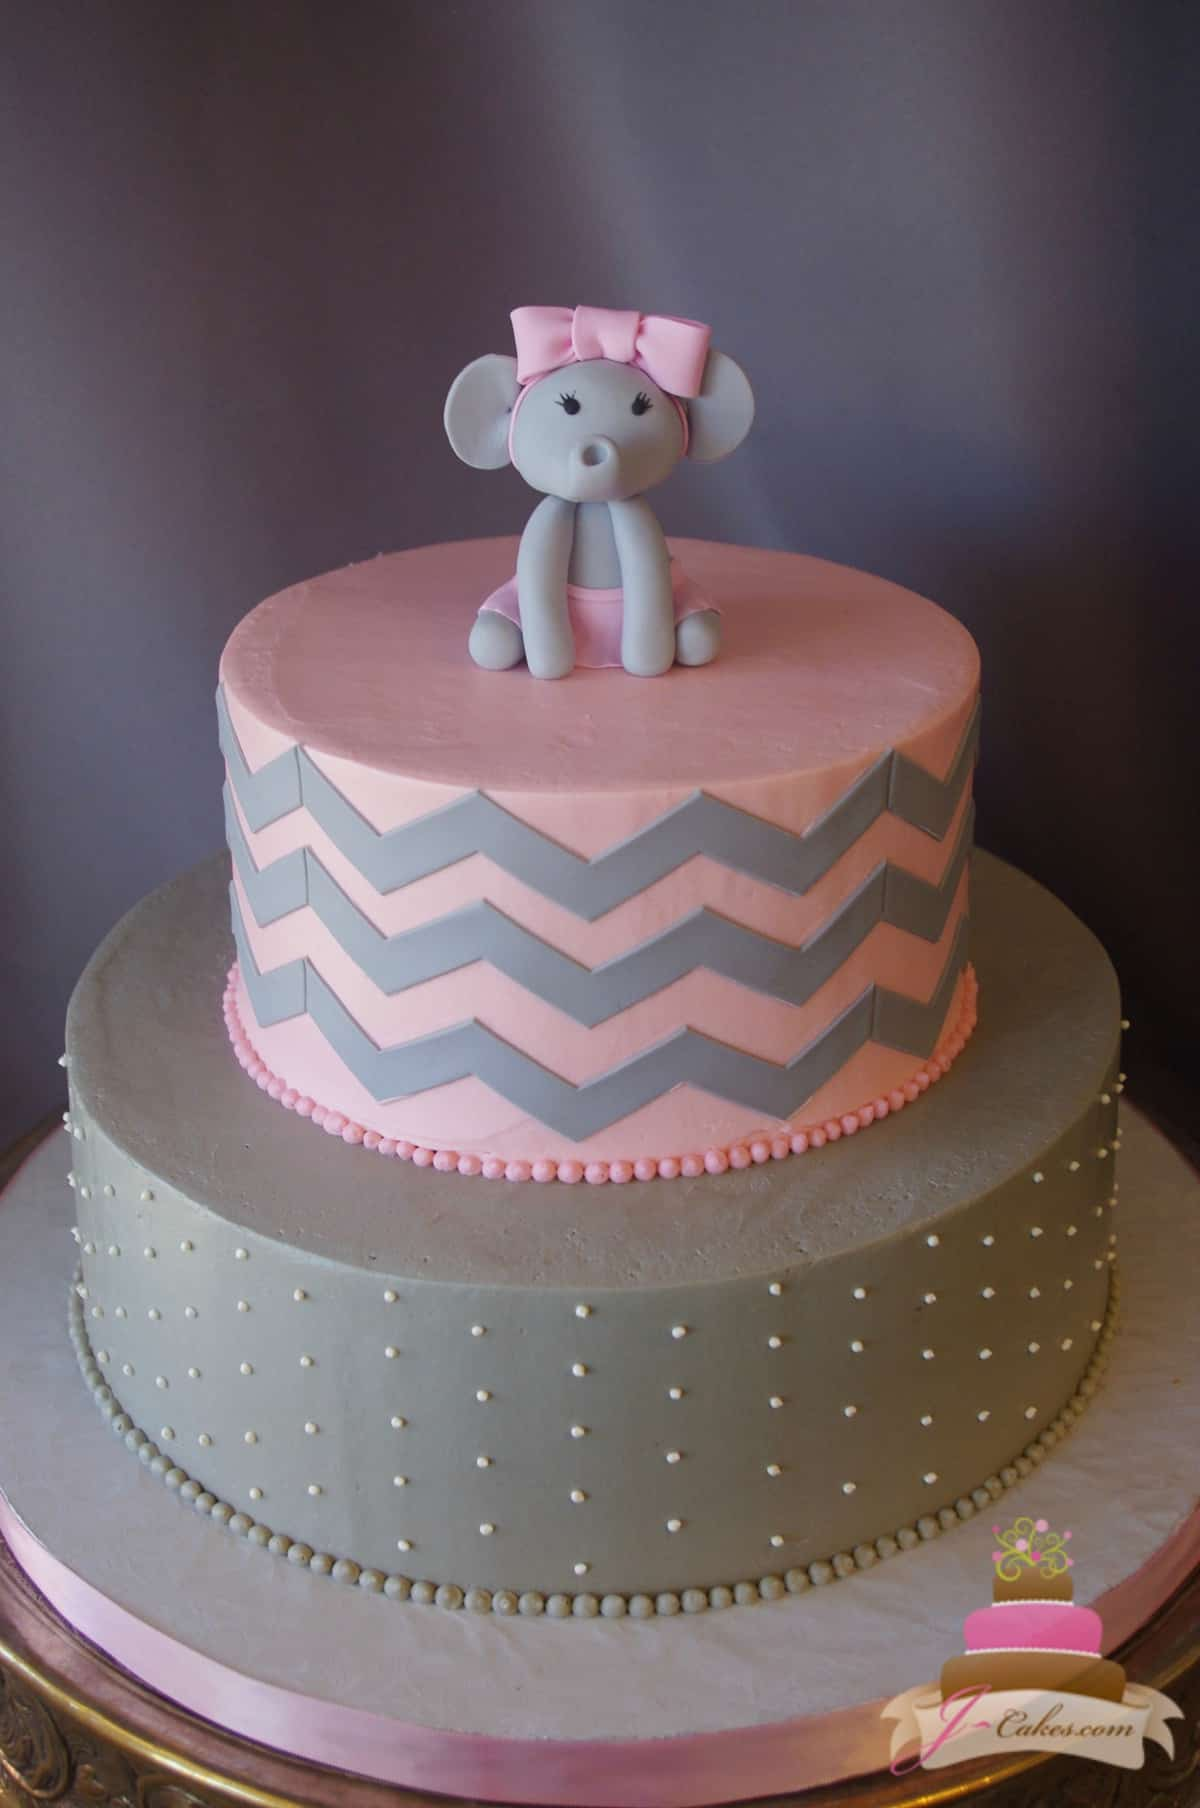 Correct Way To Make A Bed Elephant Cakes For Baby Shower Elephant Cakes